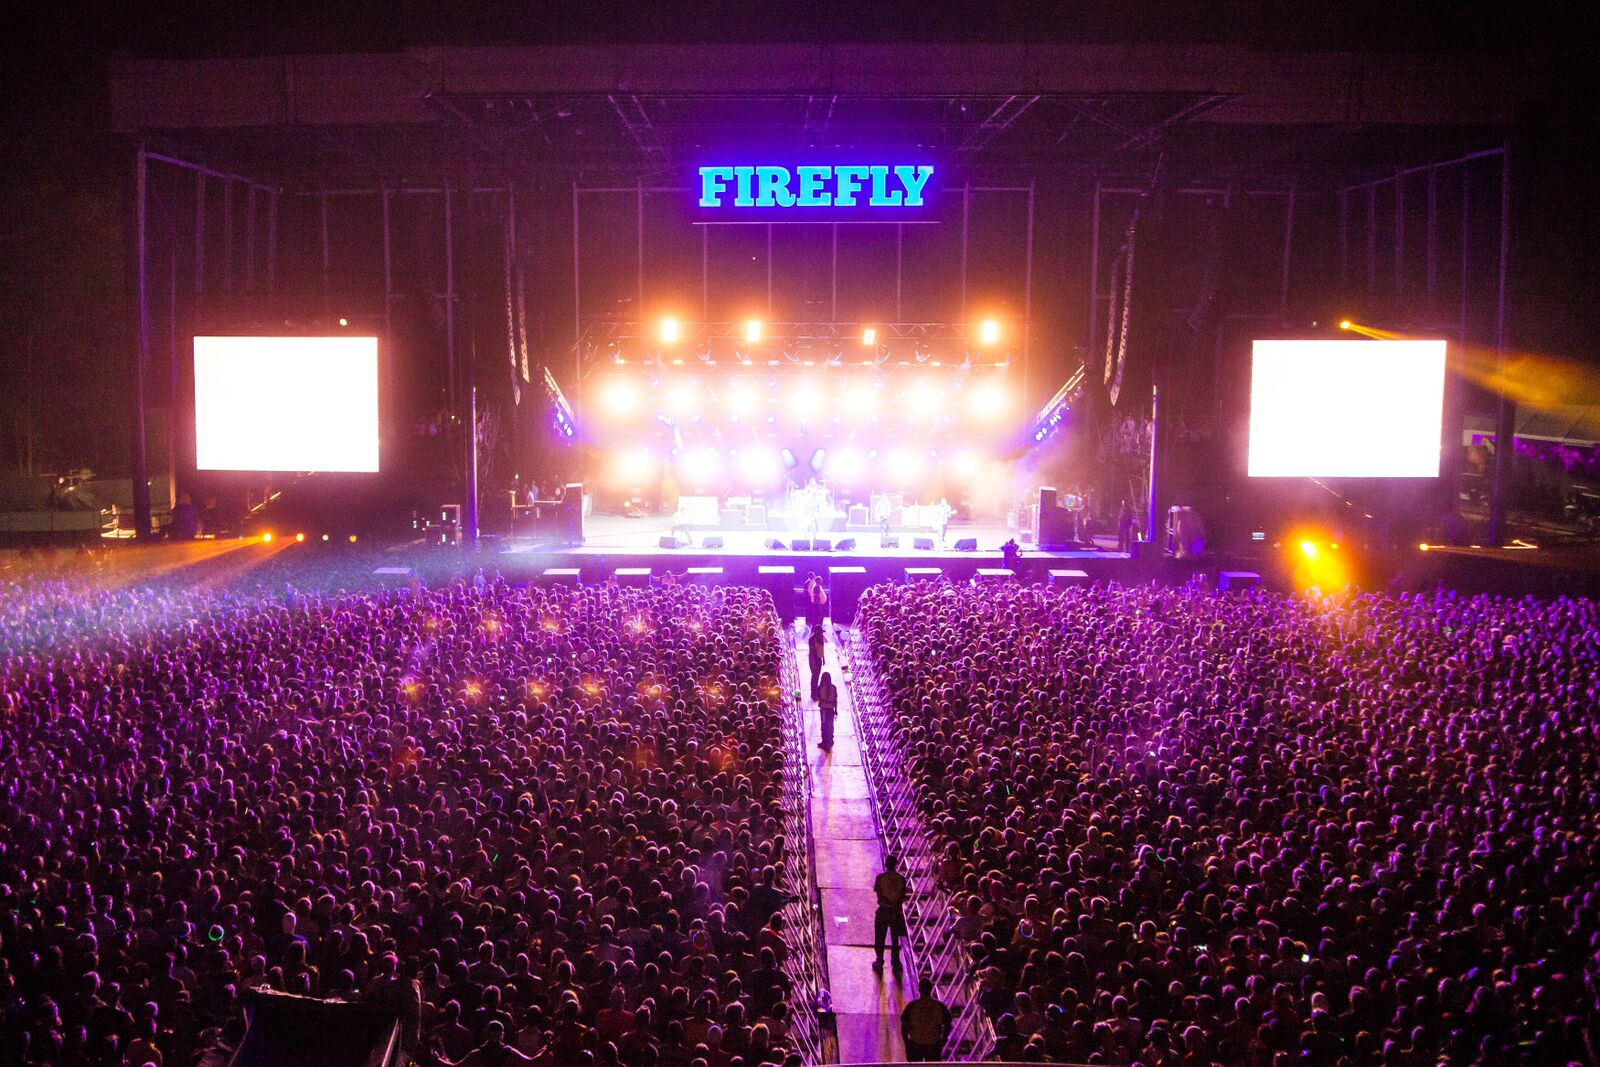 Firefly 2015: What to know before you go and how to enjoy it from home